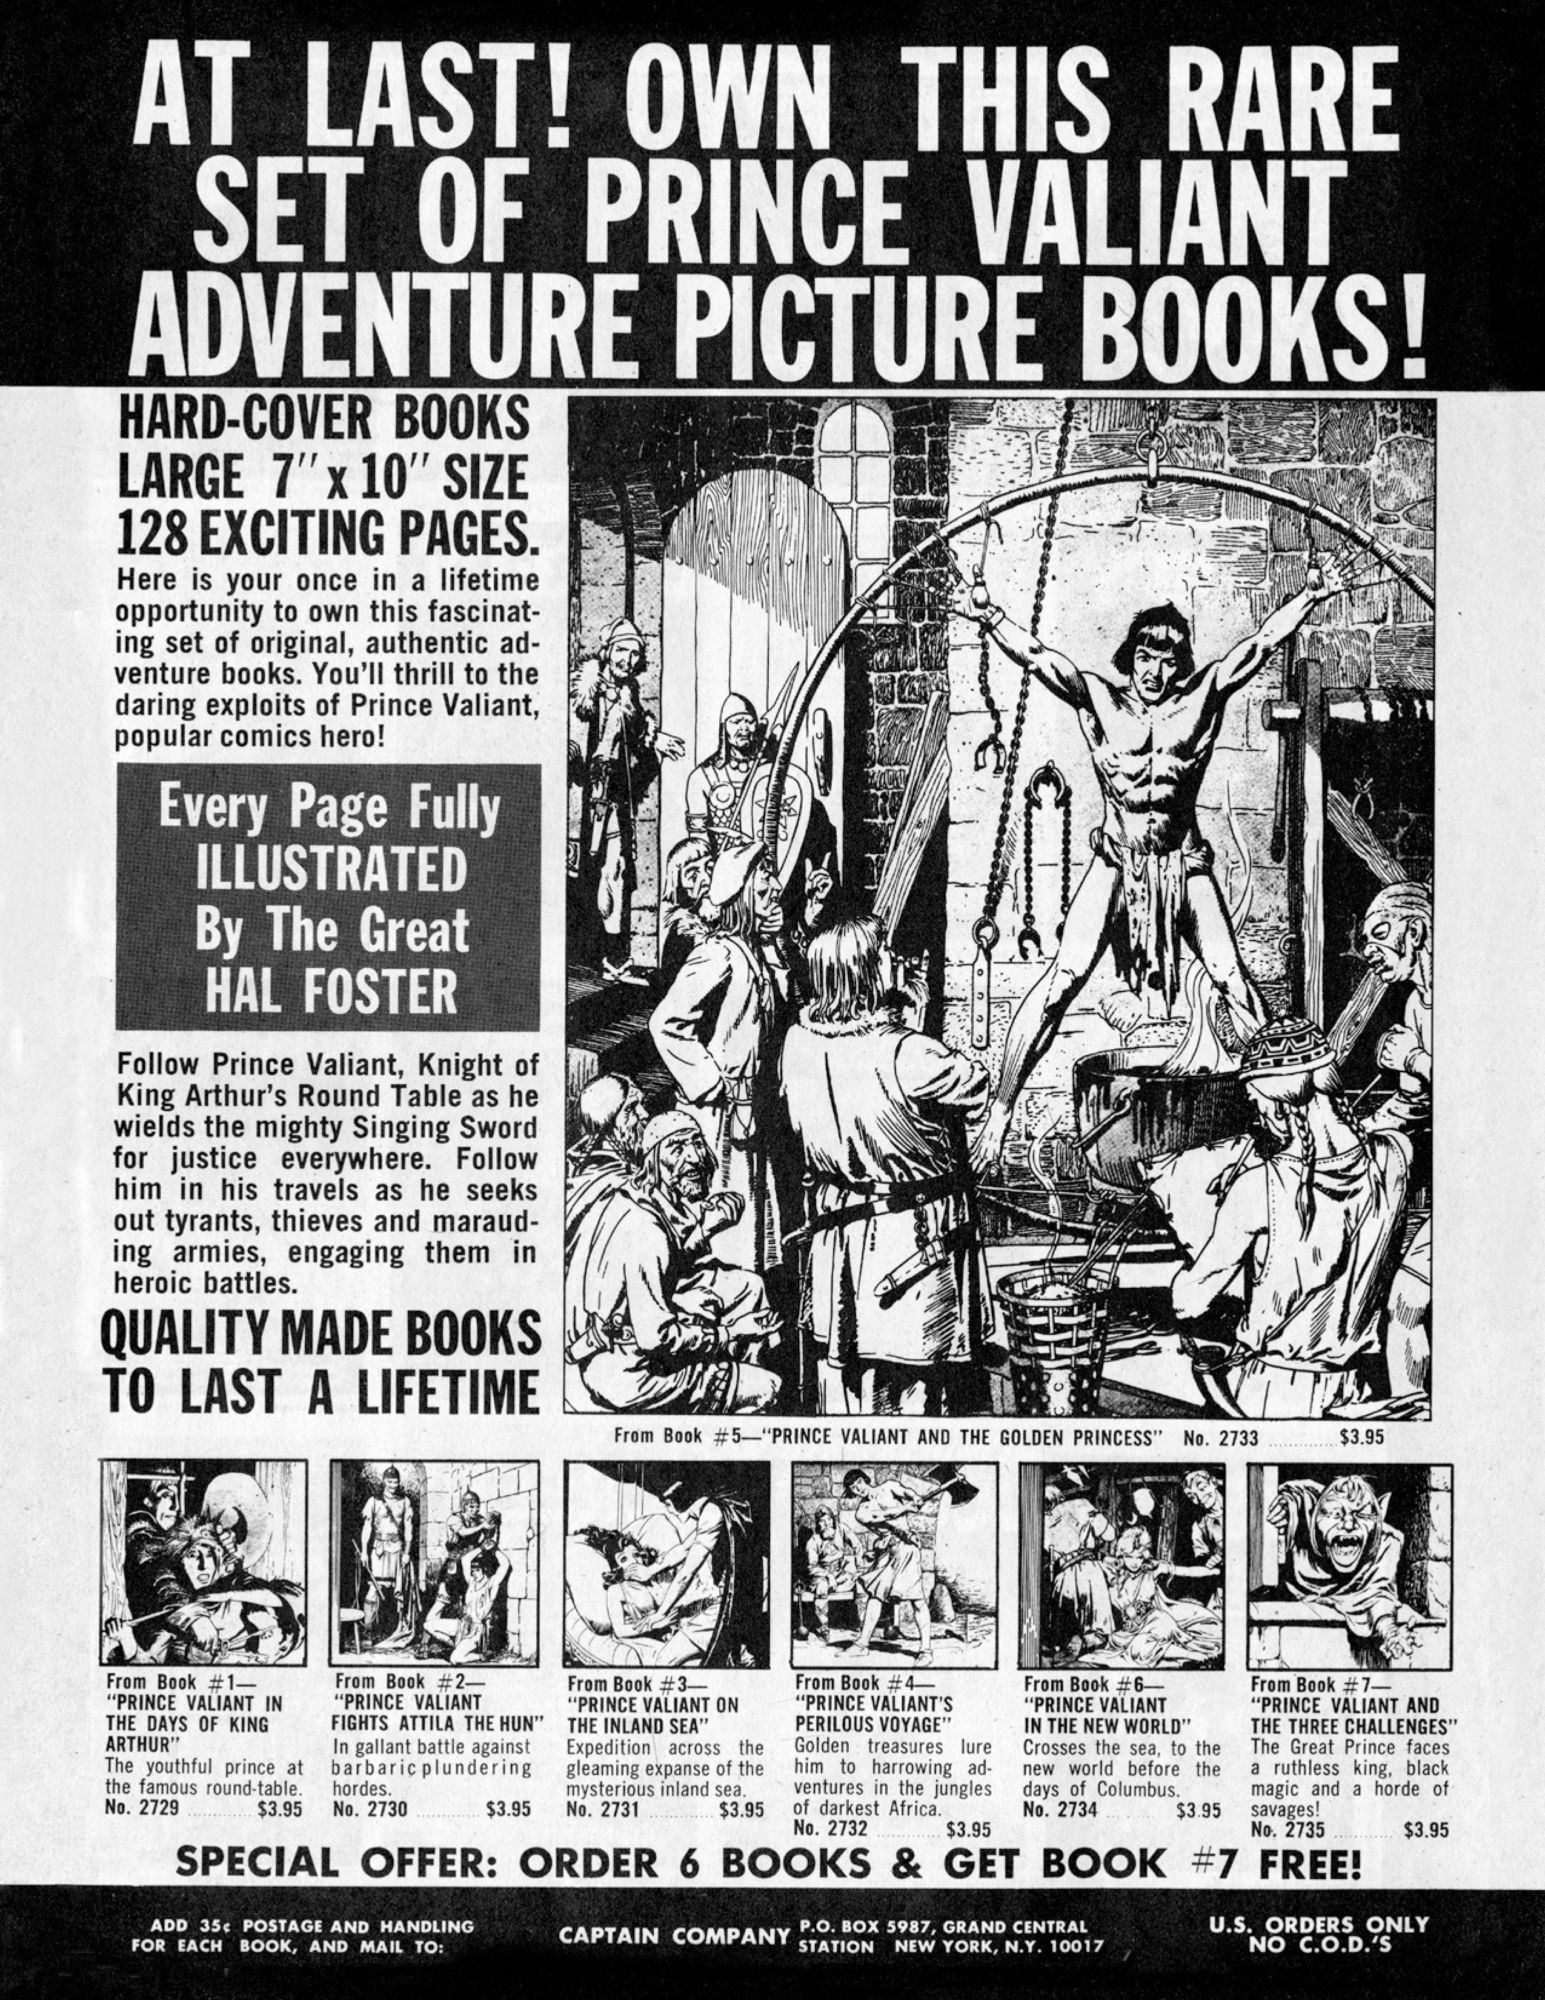 Creepy Back Issues, Conan Novels, and More Great 1969 Comic Ads from Vampirella #1 Replica Edition